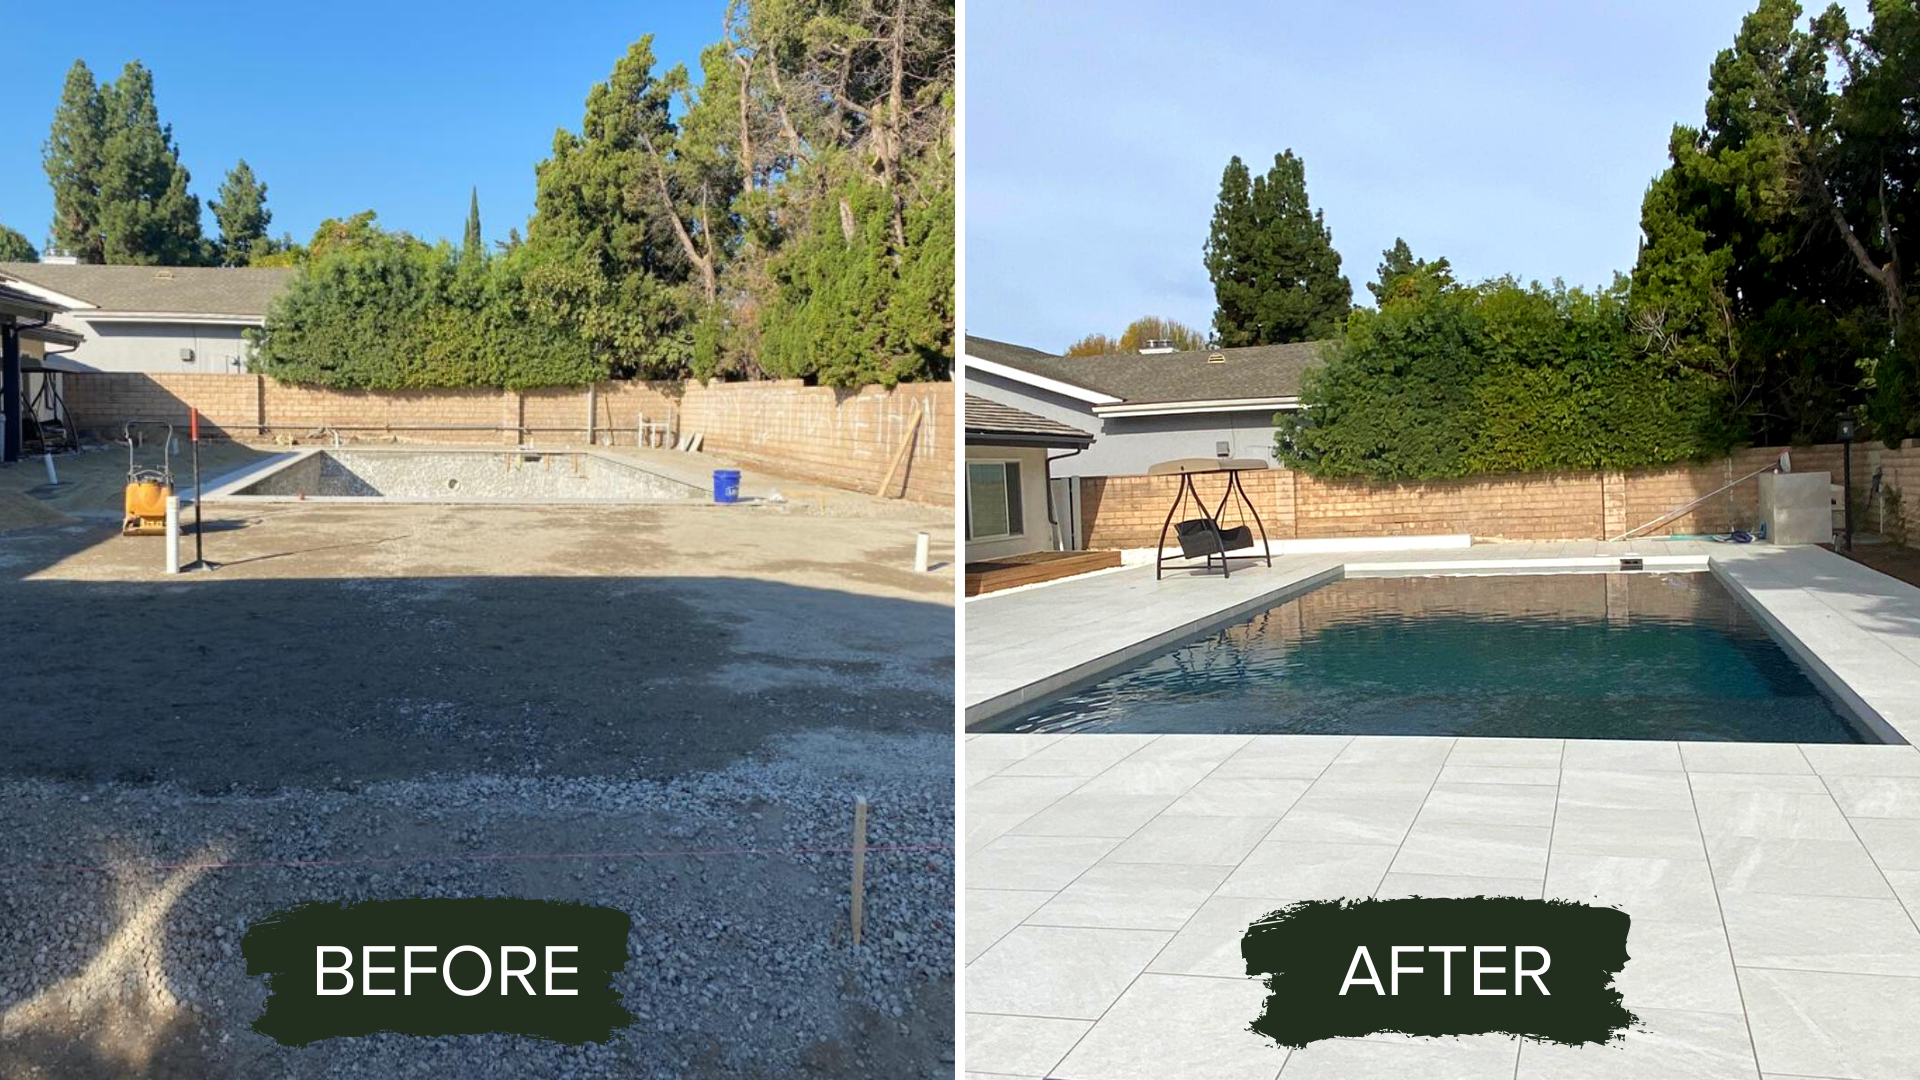 BEFORE AND AFTER POOL PAVERS